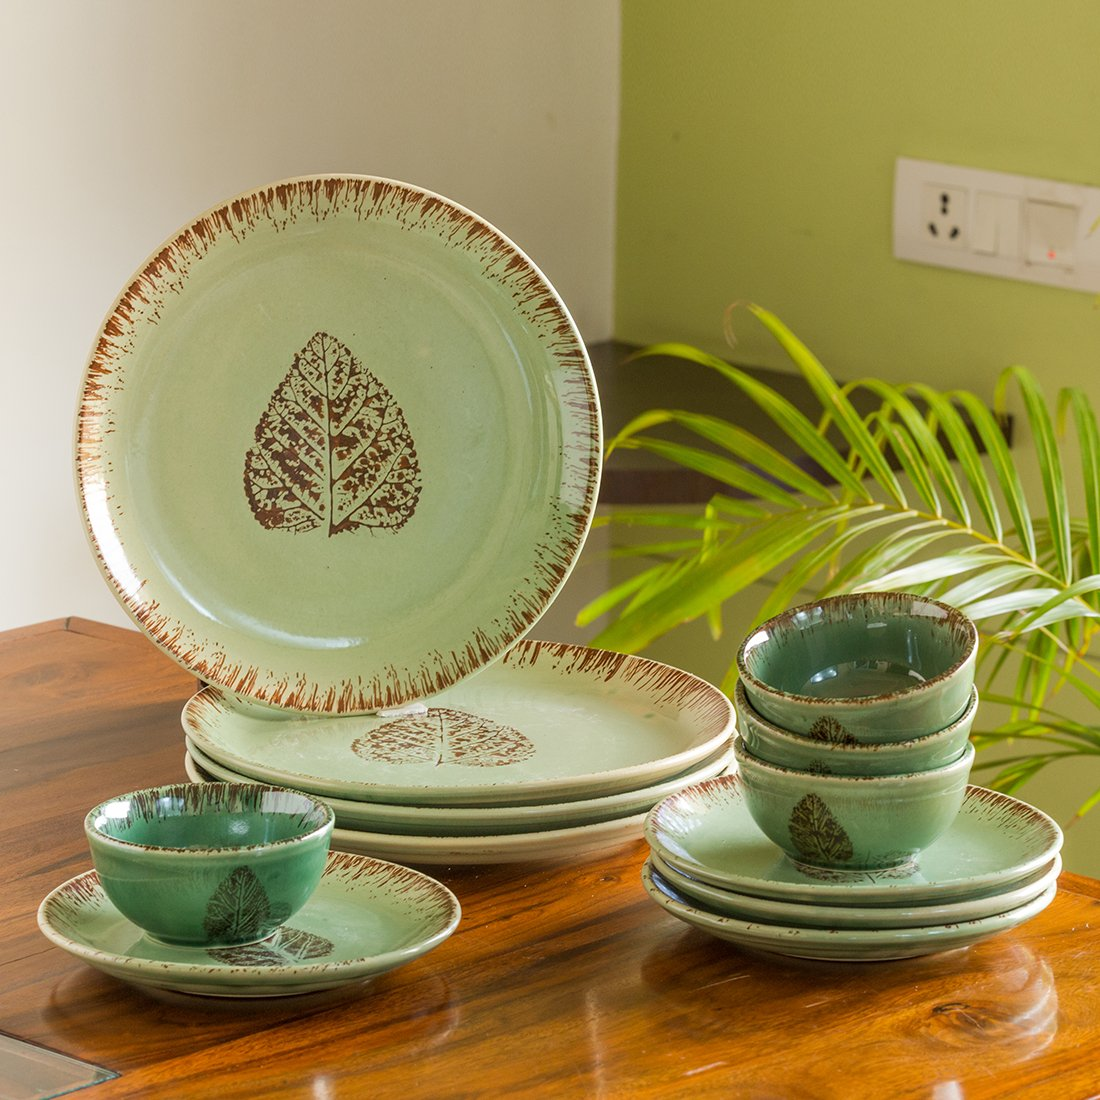 Moorni Banyan Leaves Hand-painted Studio Pottery Dinner Plates with Quarter Plates & Katoris In Ceramic (12 Pieces, Serving for 4, Microwave Safe)